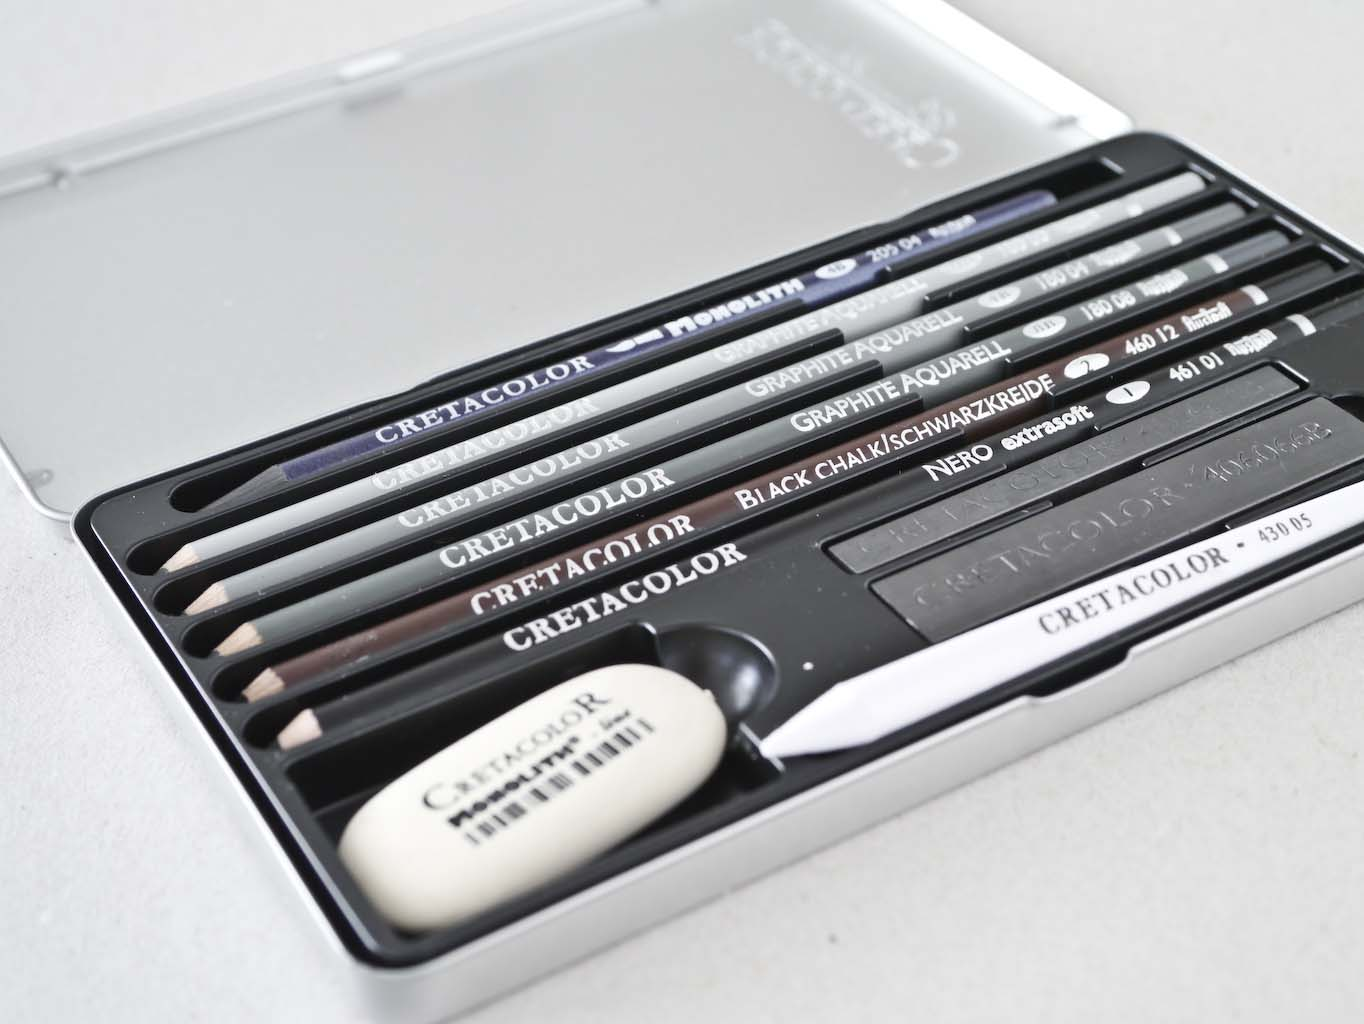 Cretacolor Artino Graphite Drawing Set